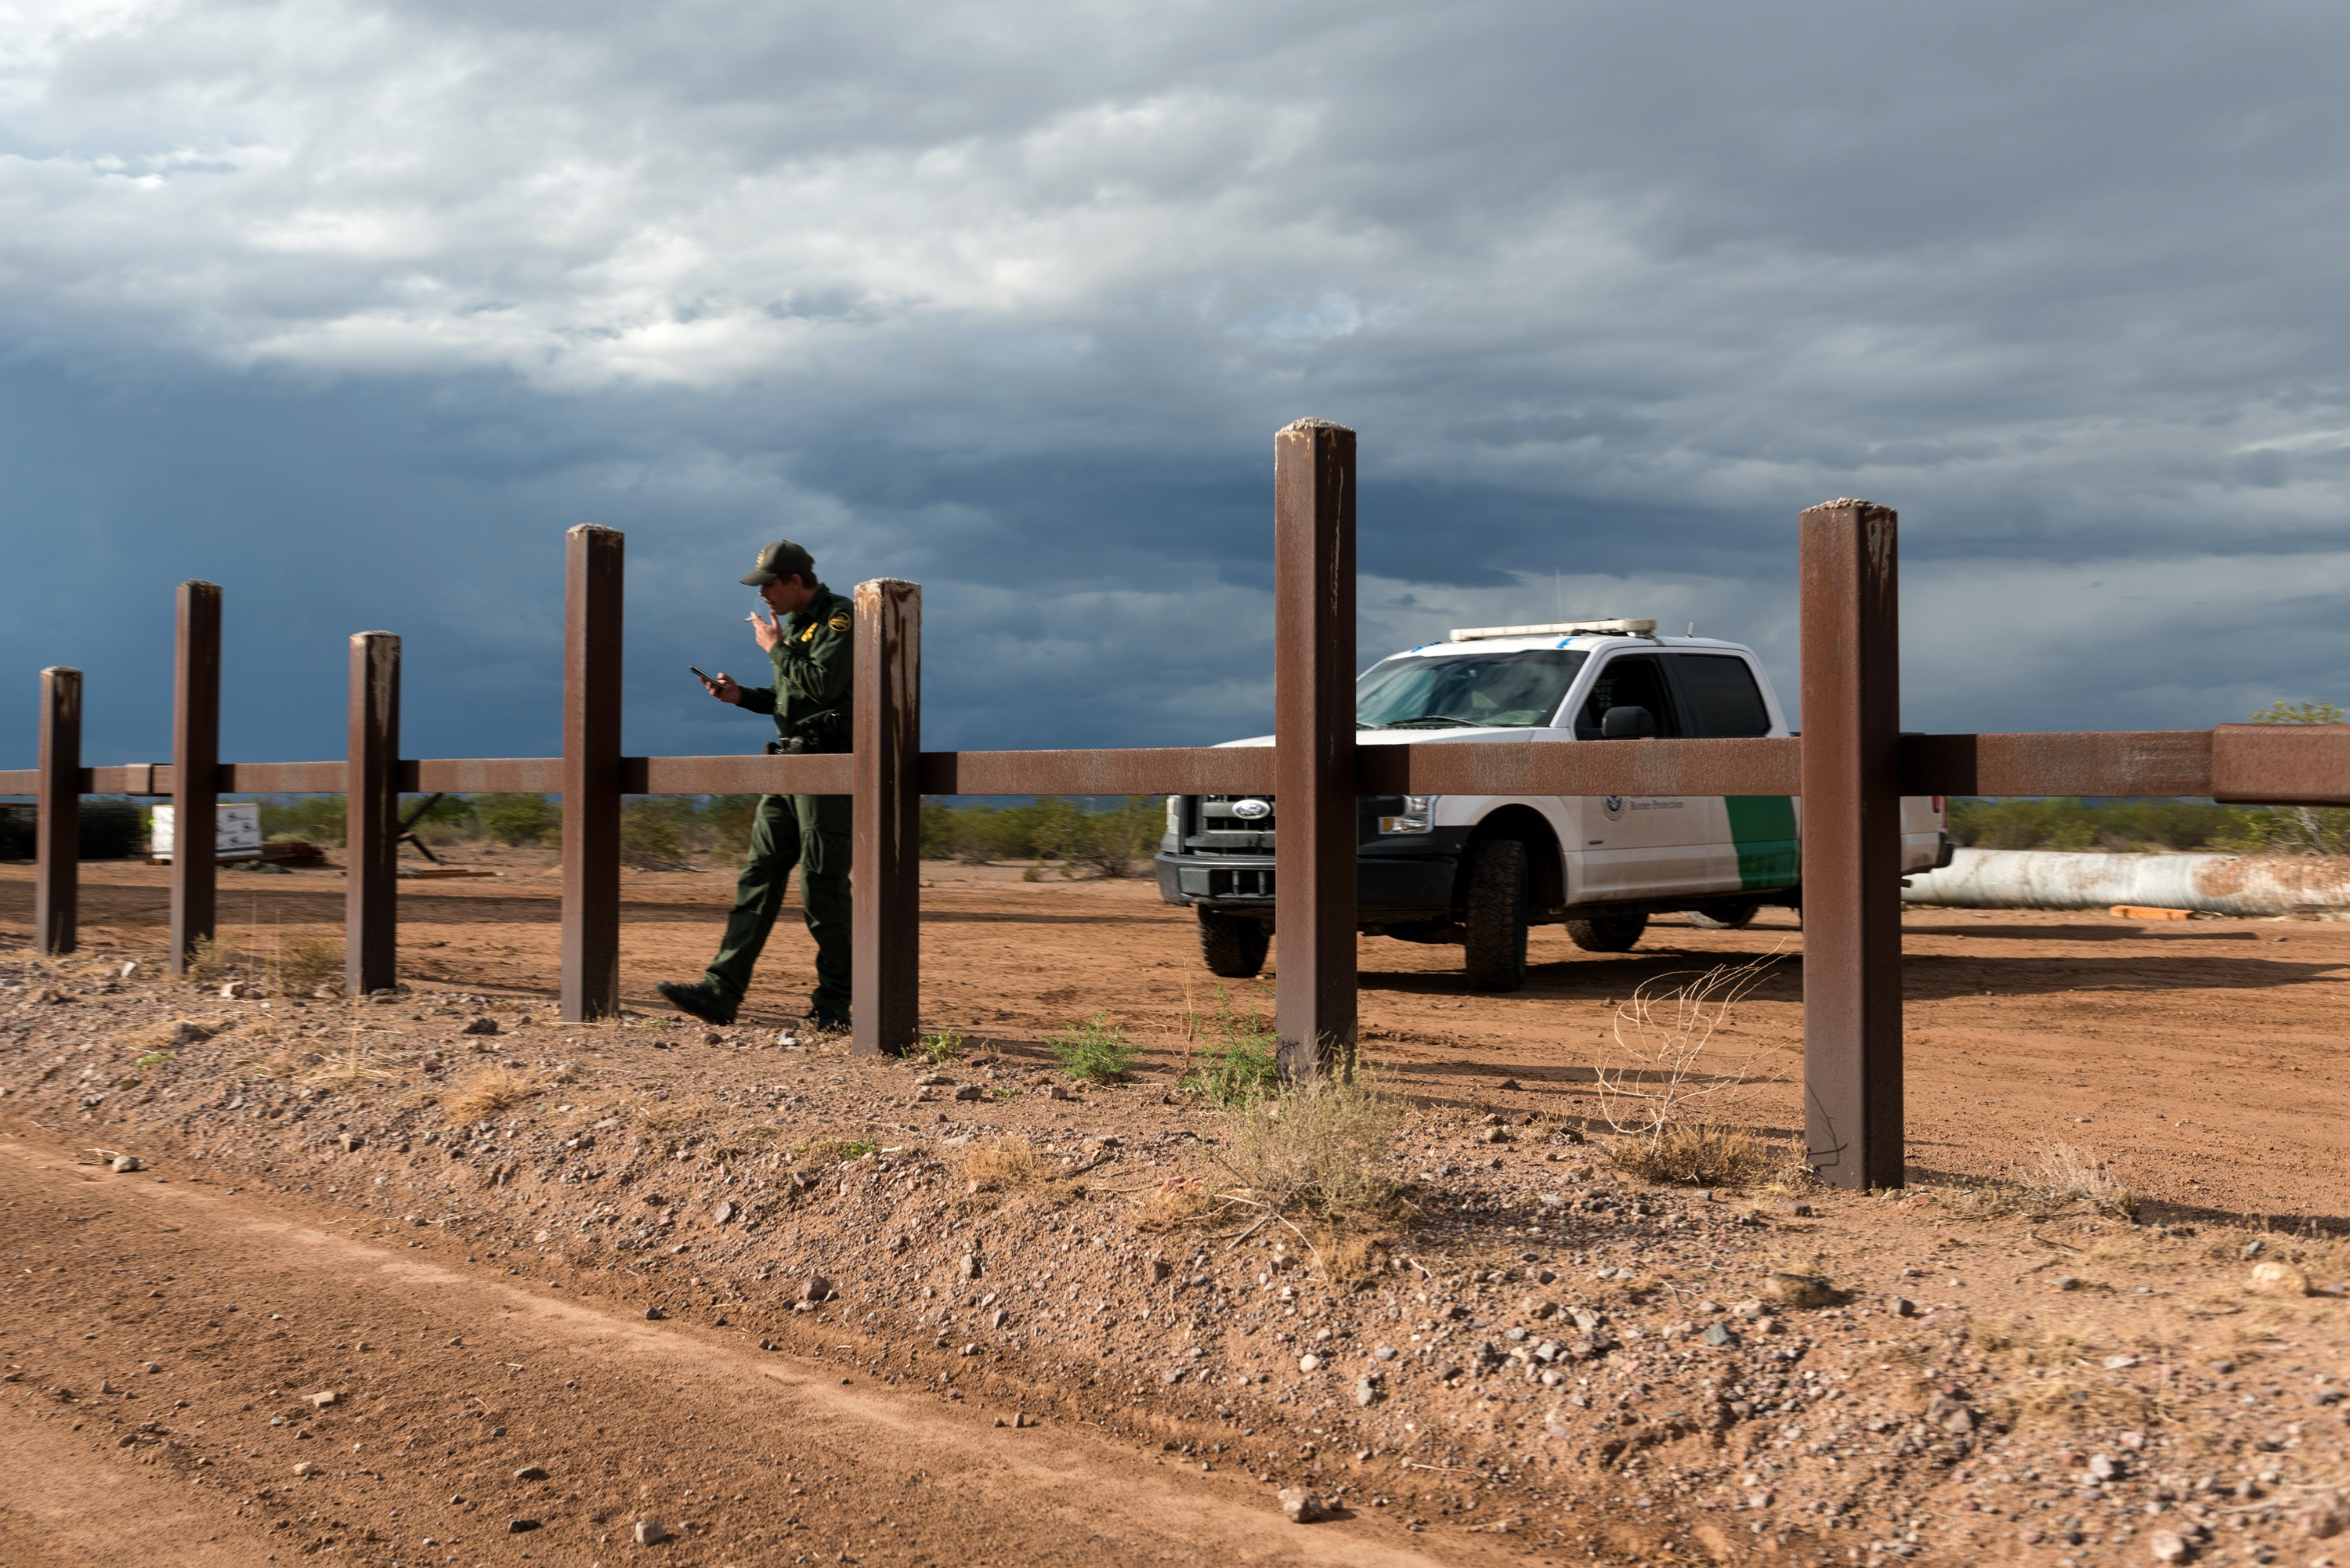 Lukeville, Ariz. September 26, 2019: A CBP officer observes and reports on Laiken Jordahl's movement from across the border to the east of Lukeville, Ariz. on Thursday September 26, 2019. (Ash Ponders for The Intercept)